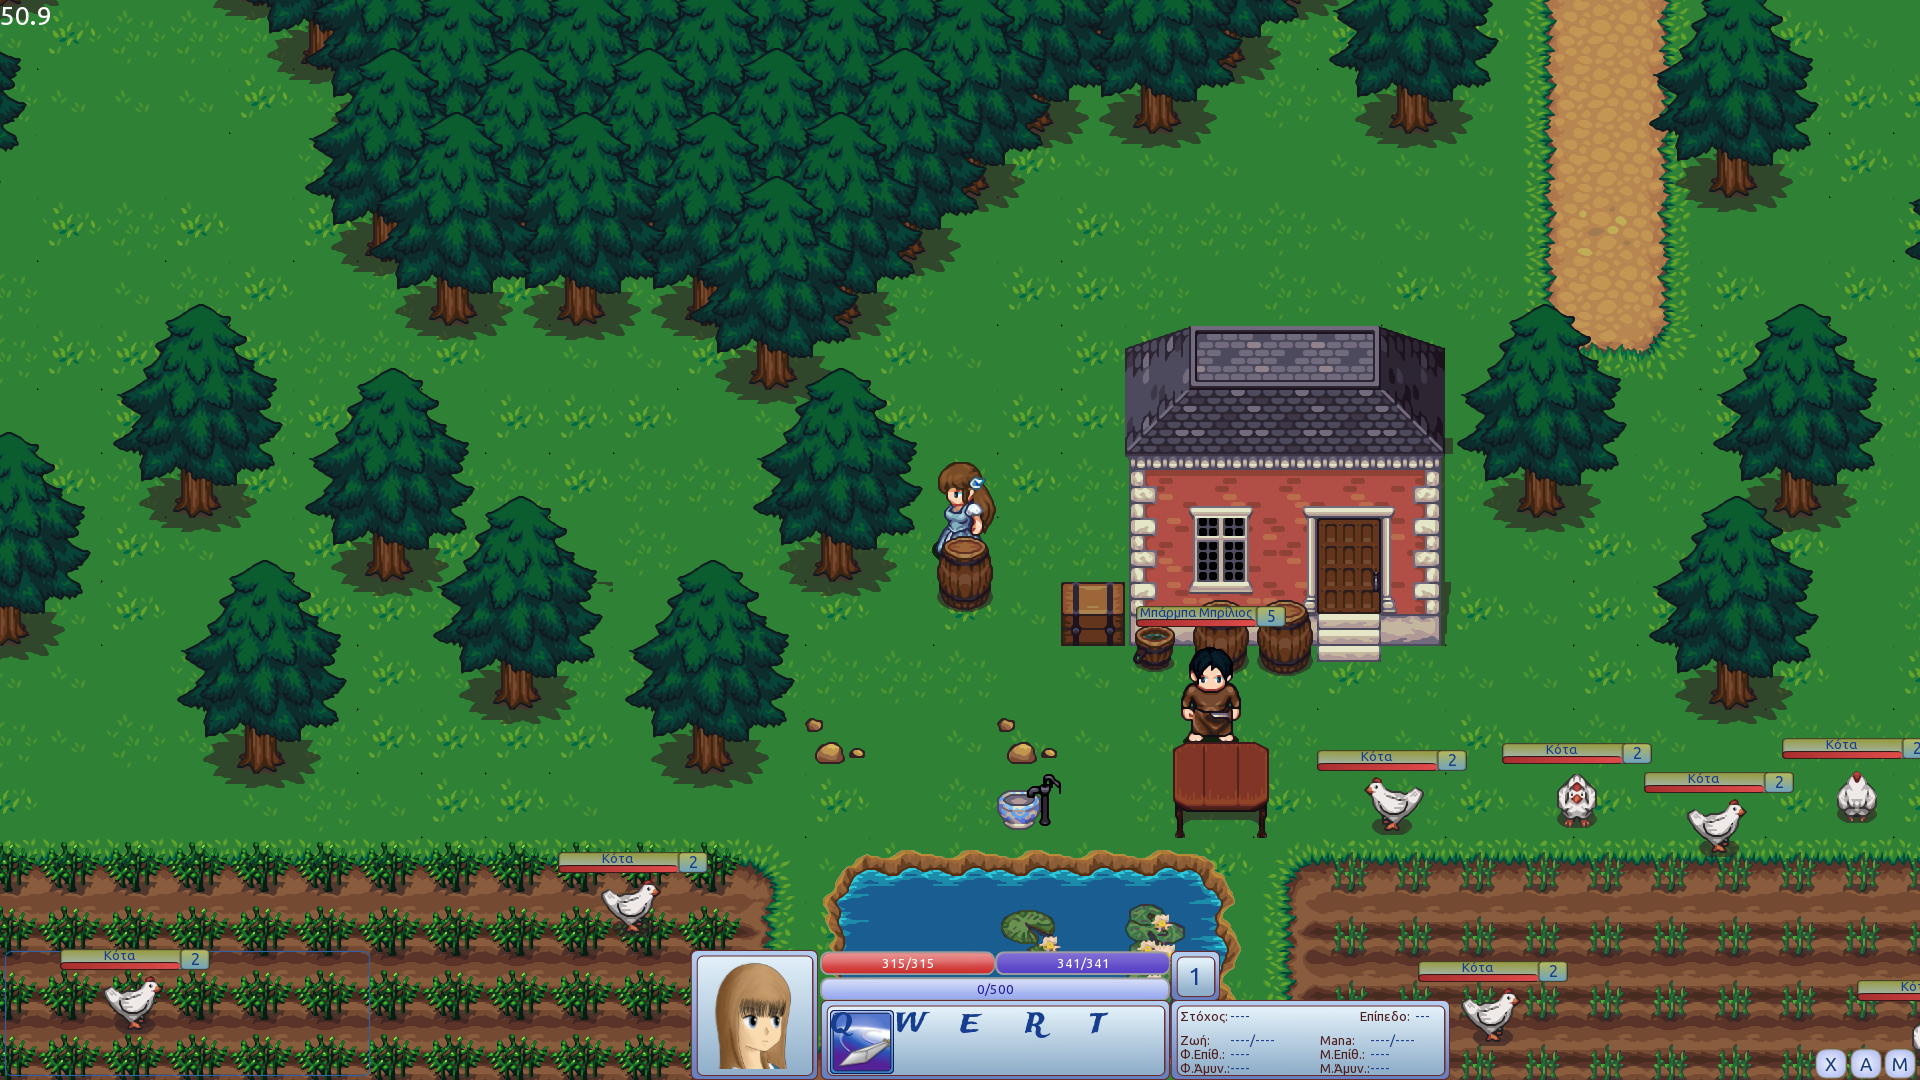 Download web tool or web app Zeta Engine to run in Linux online